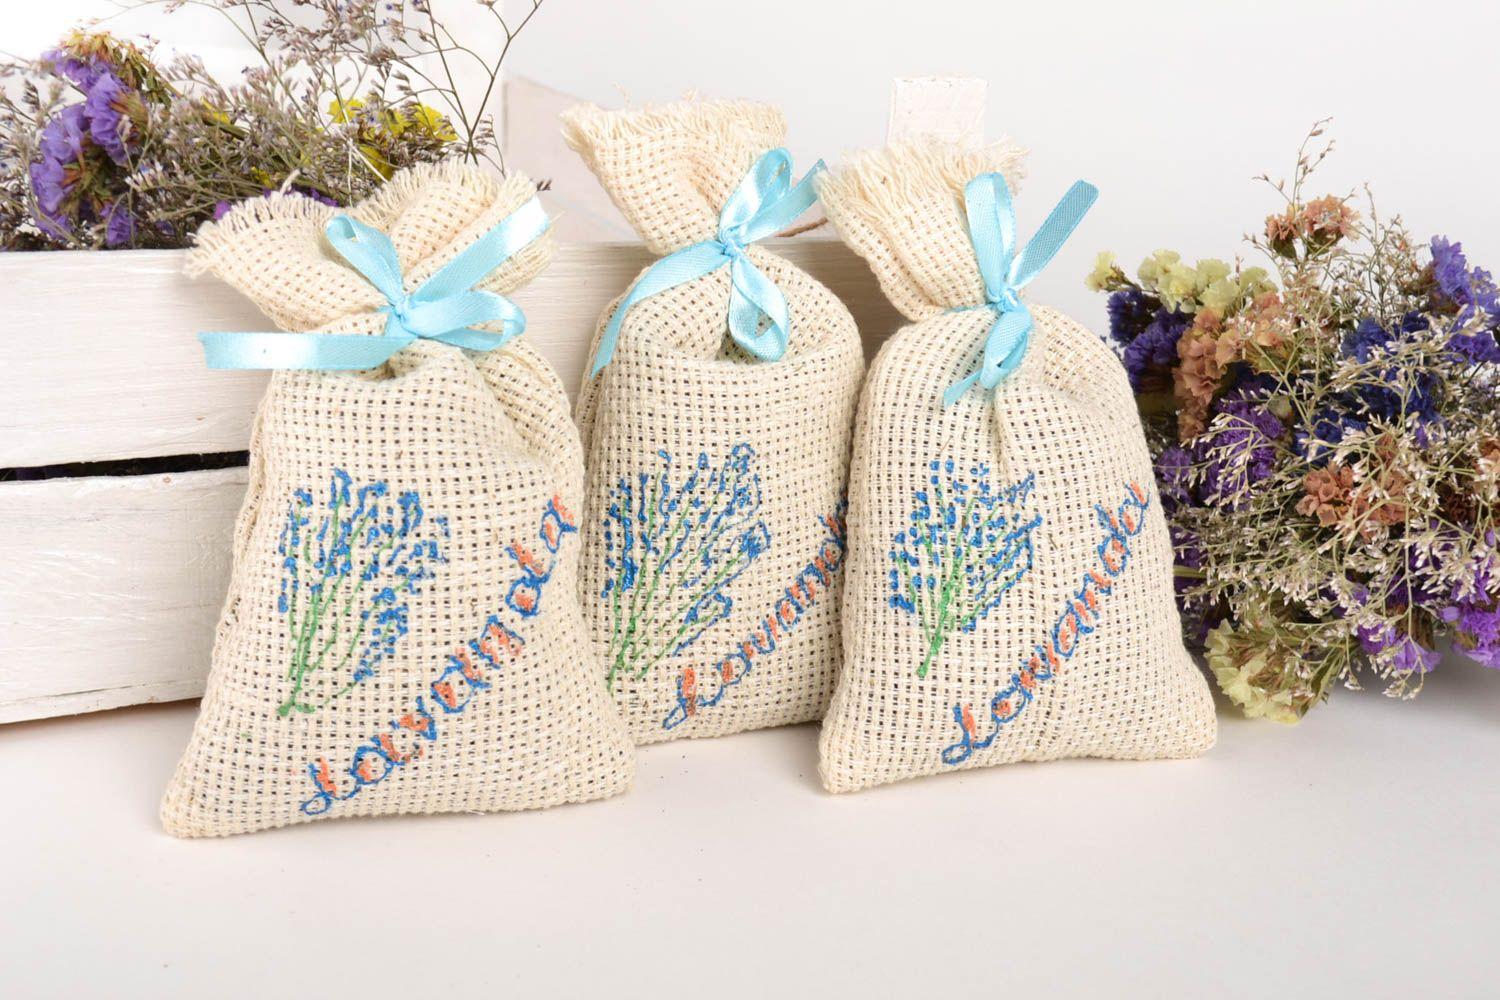 Sachet pillows handmade lavender sachets aroma therapy homemade gifts for friend photo 1